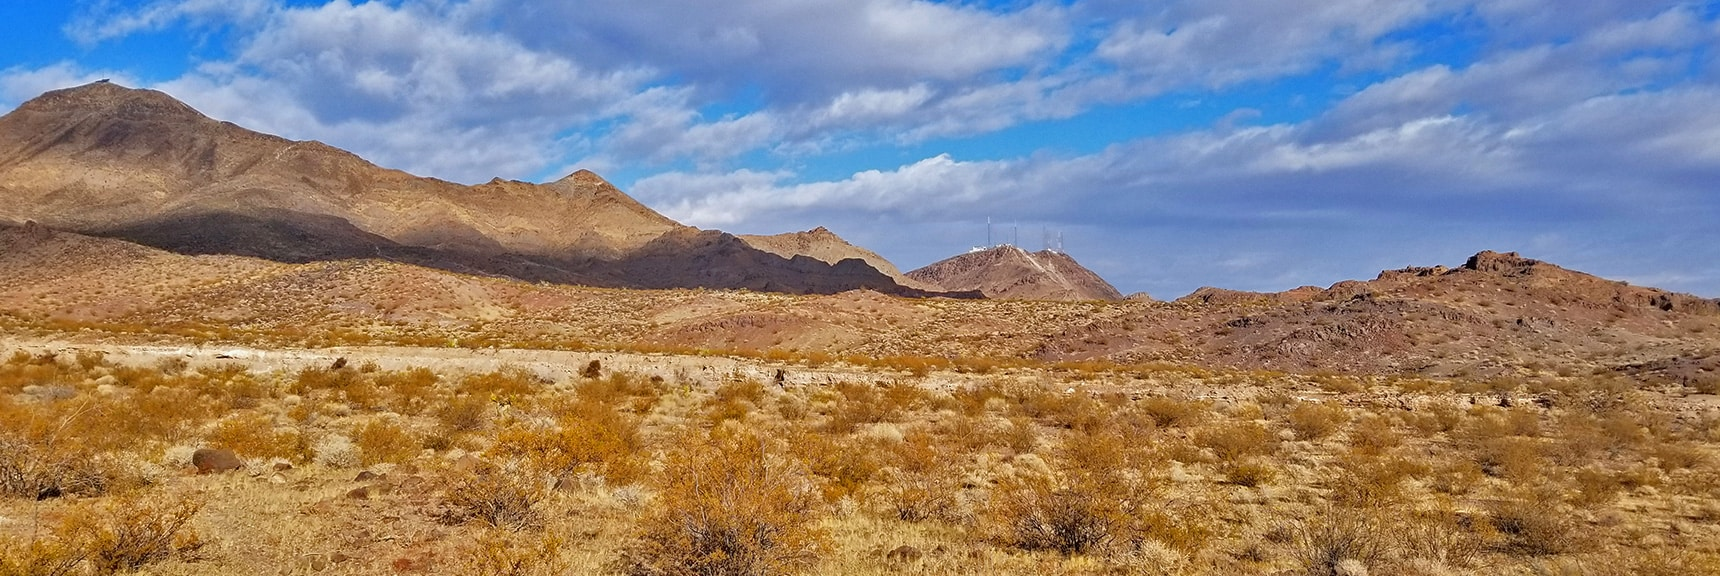 View Back Toward the Trailhead Marked by Communication Towers   McCullough Hills Trail in Sloan Canyon National Conservation Area, Nevada